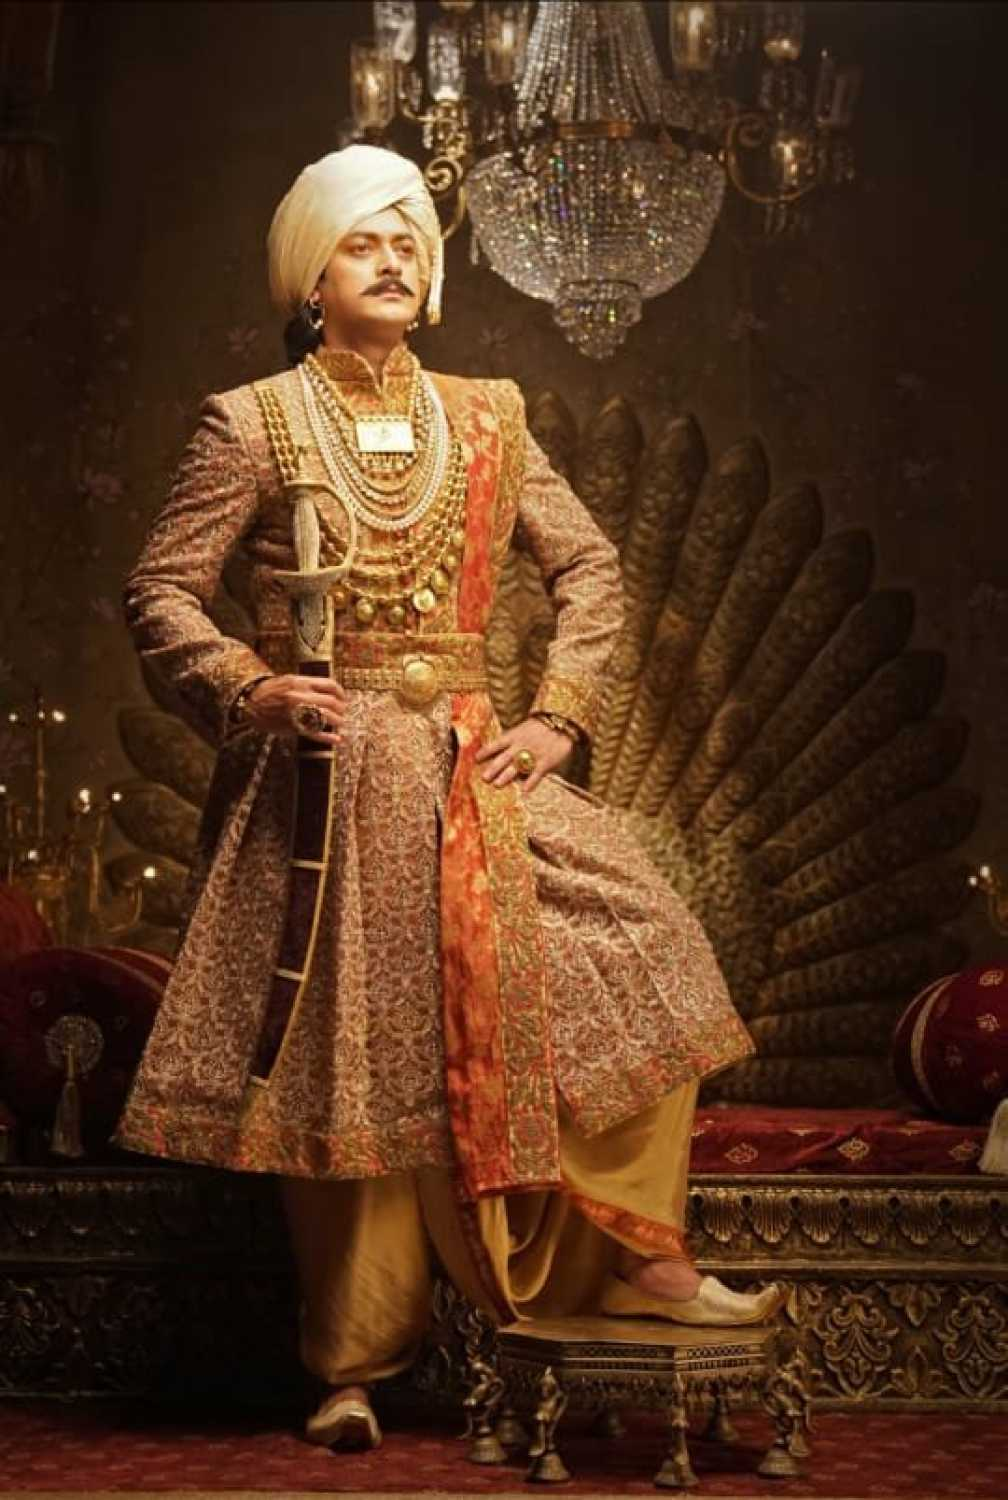 Manikarnika (The Queen Of Jhansi): Box Office Collection, Budget, Hit or Flop, Star Cast and Crew, Predictions, Posters, Story, Wiki